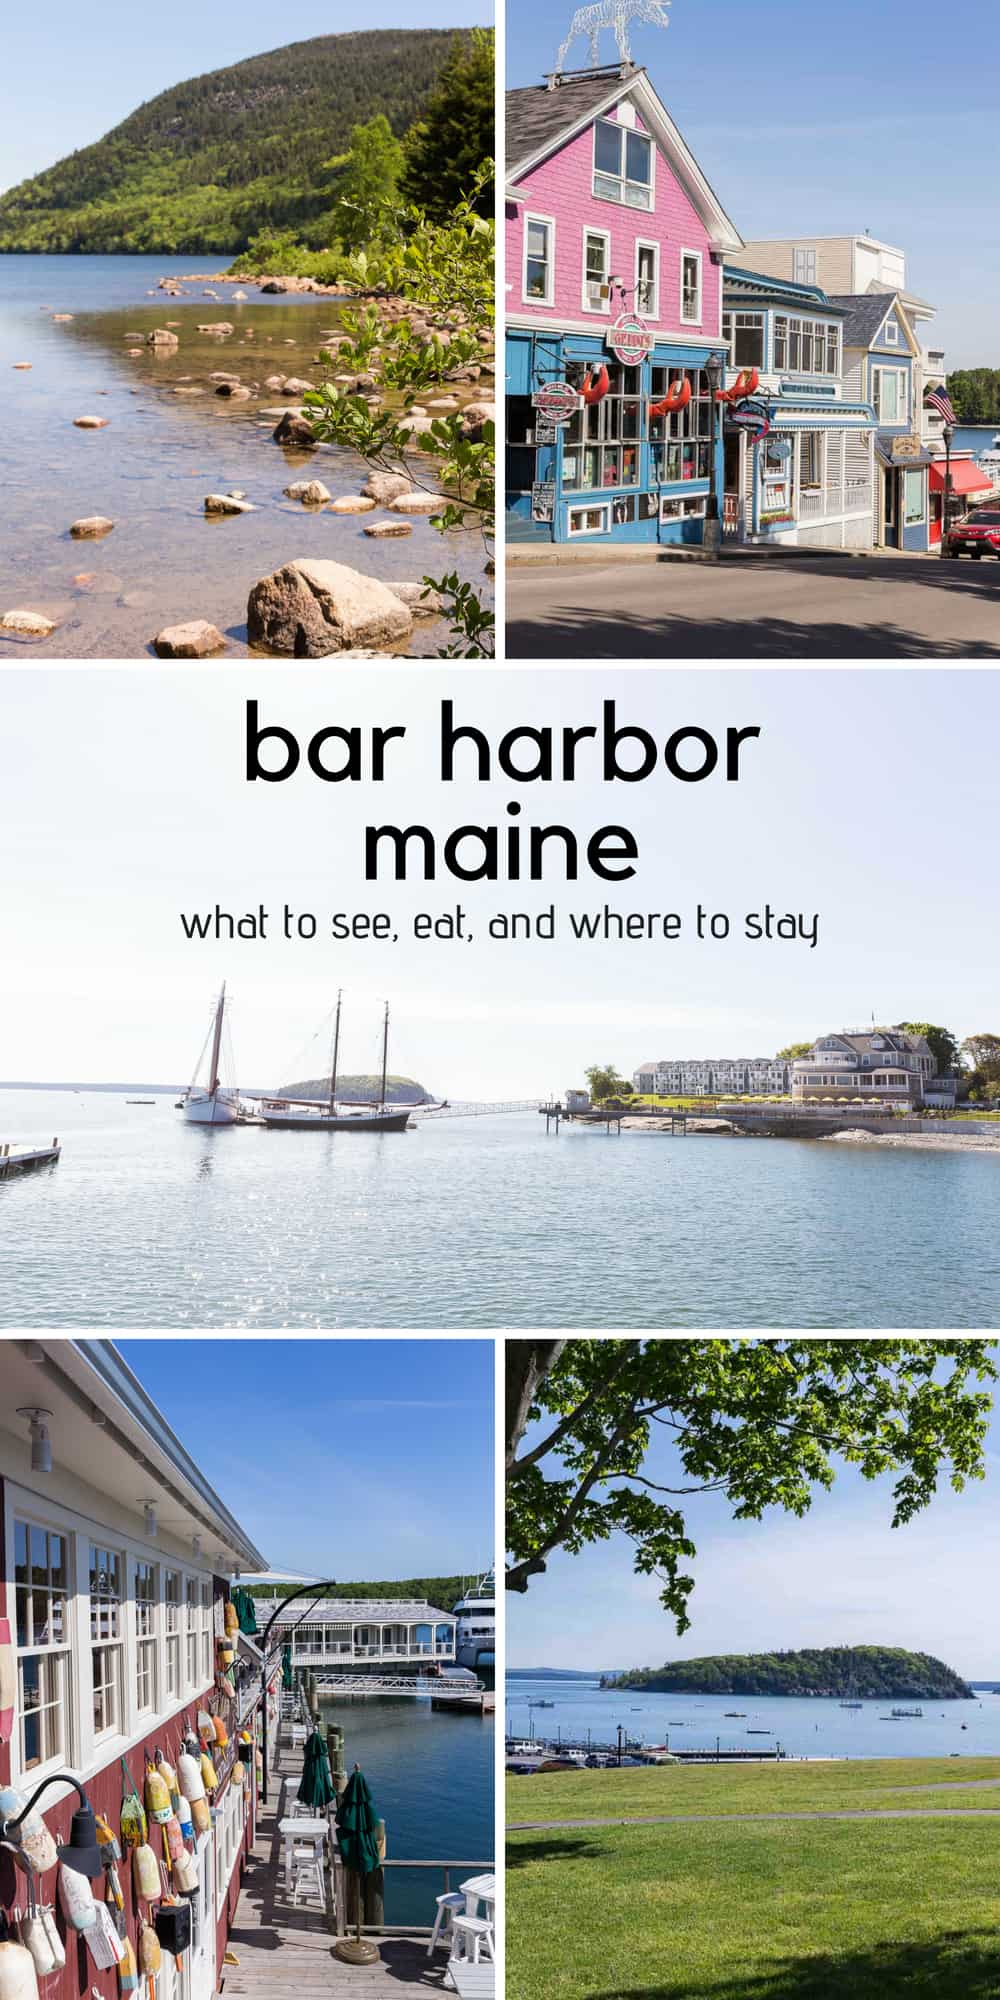 Our favorite things to do, see, and eat in Bar Harbor -- family-friendly Bar Harbor, Maine restaurants and attractions that the whole crew enjoys!